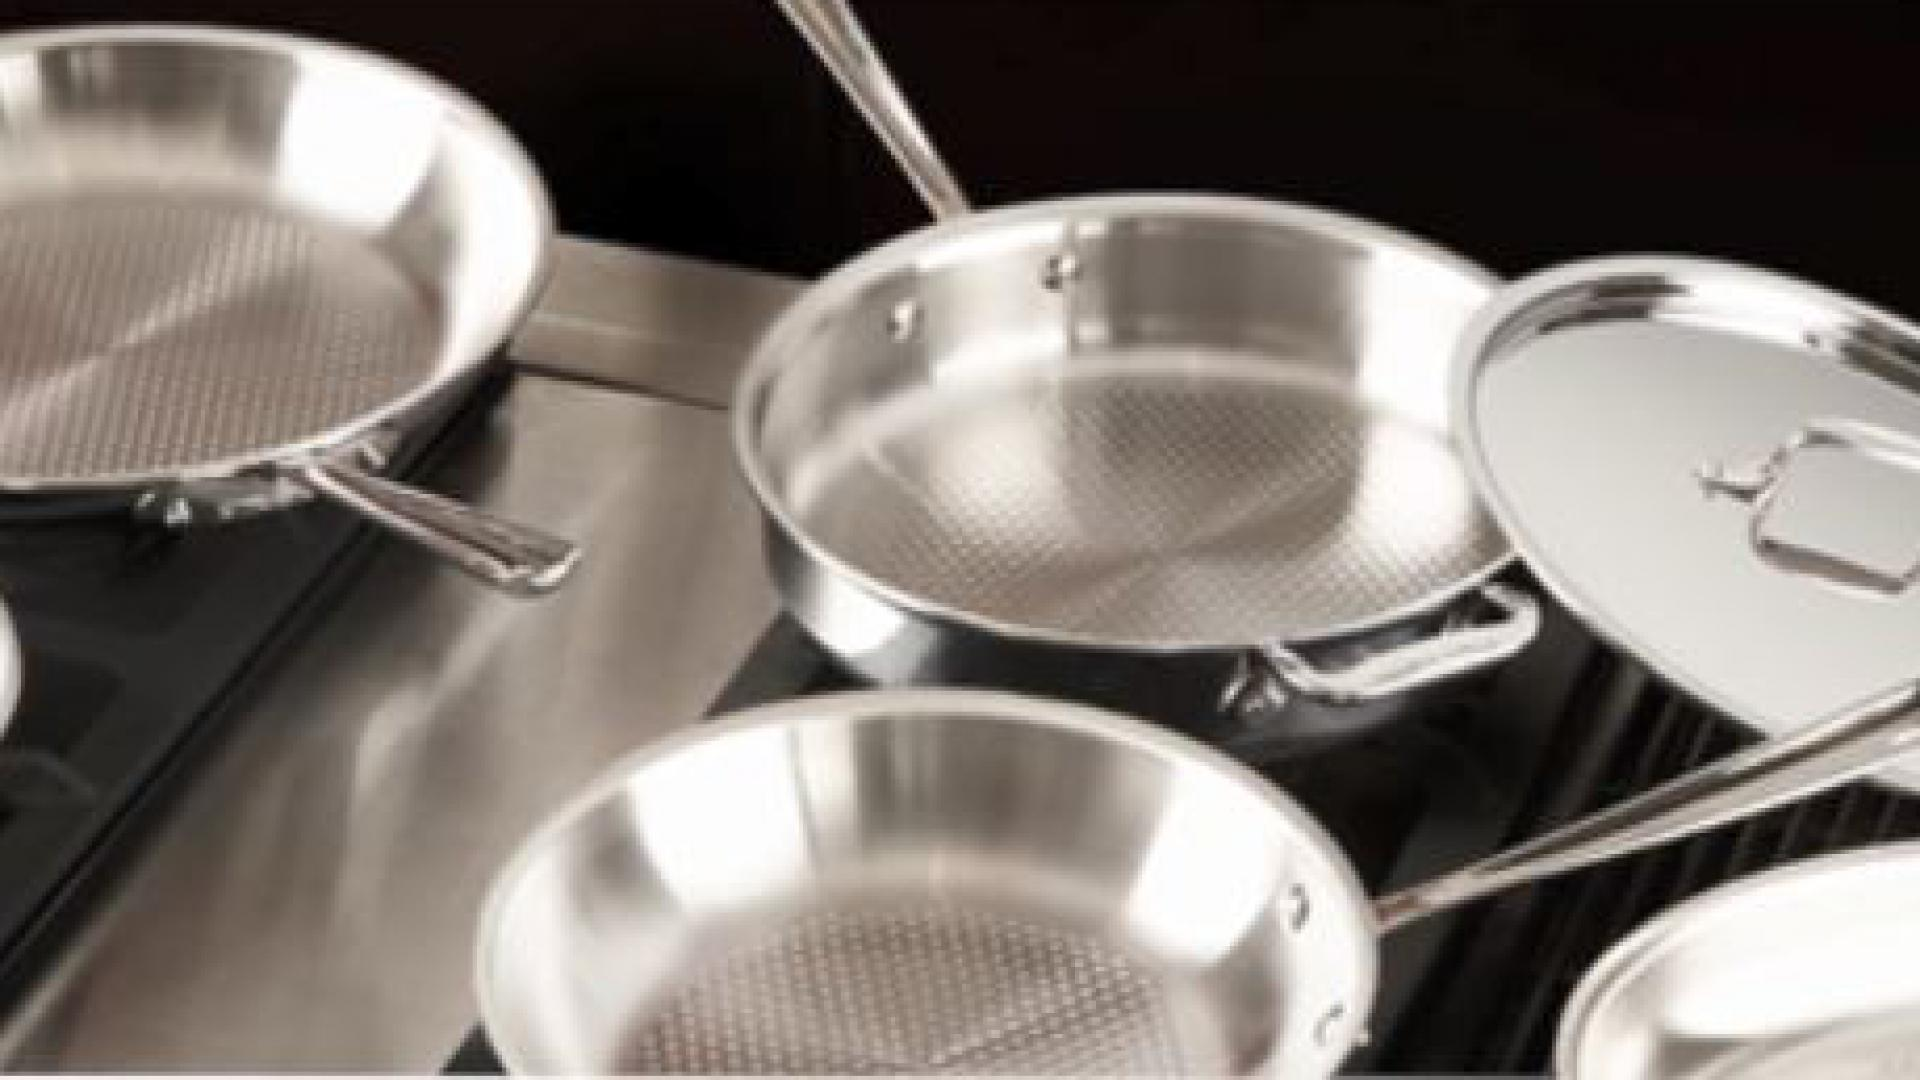 All-Clad D3 Armor Stainless Steel Fry Pan